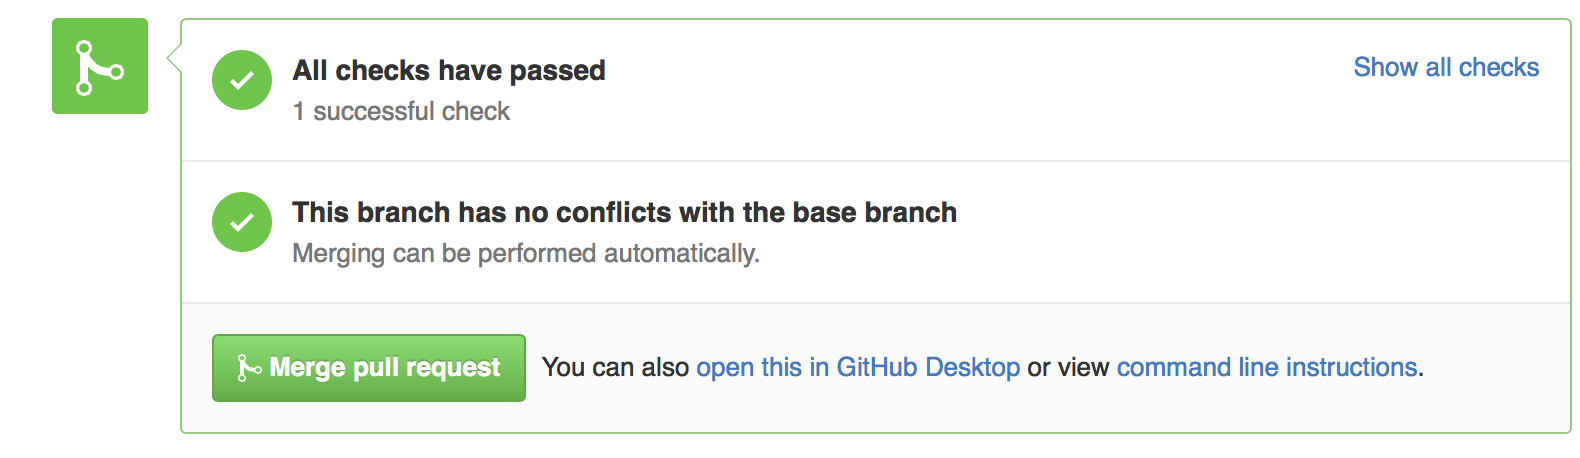 how to merge pull request | What is pull request in Github